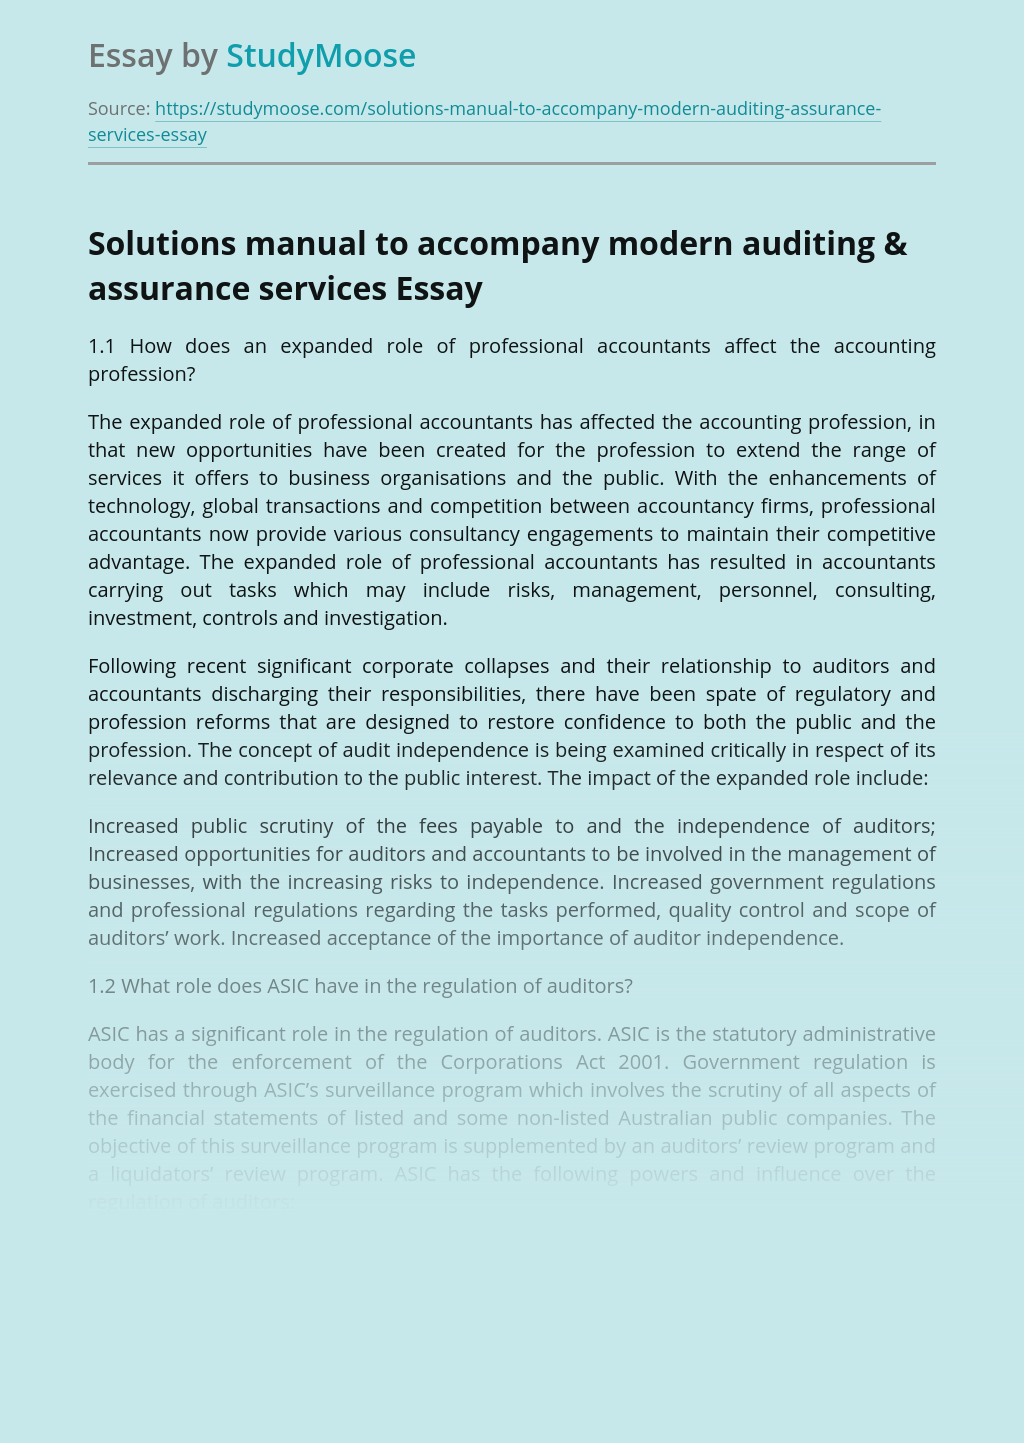 Solutions manual to accompany modern auditing & assurance services